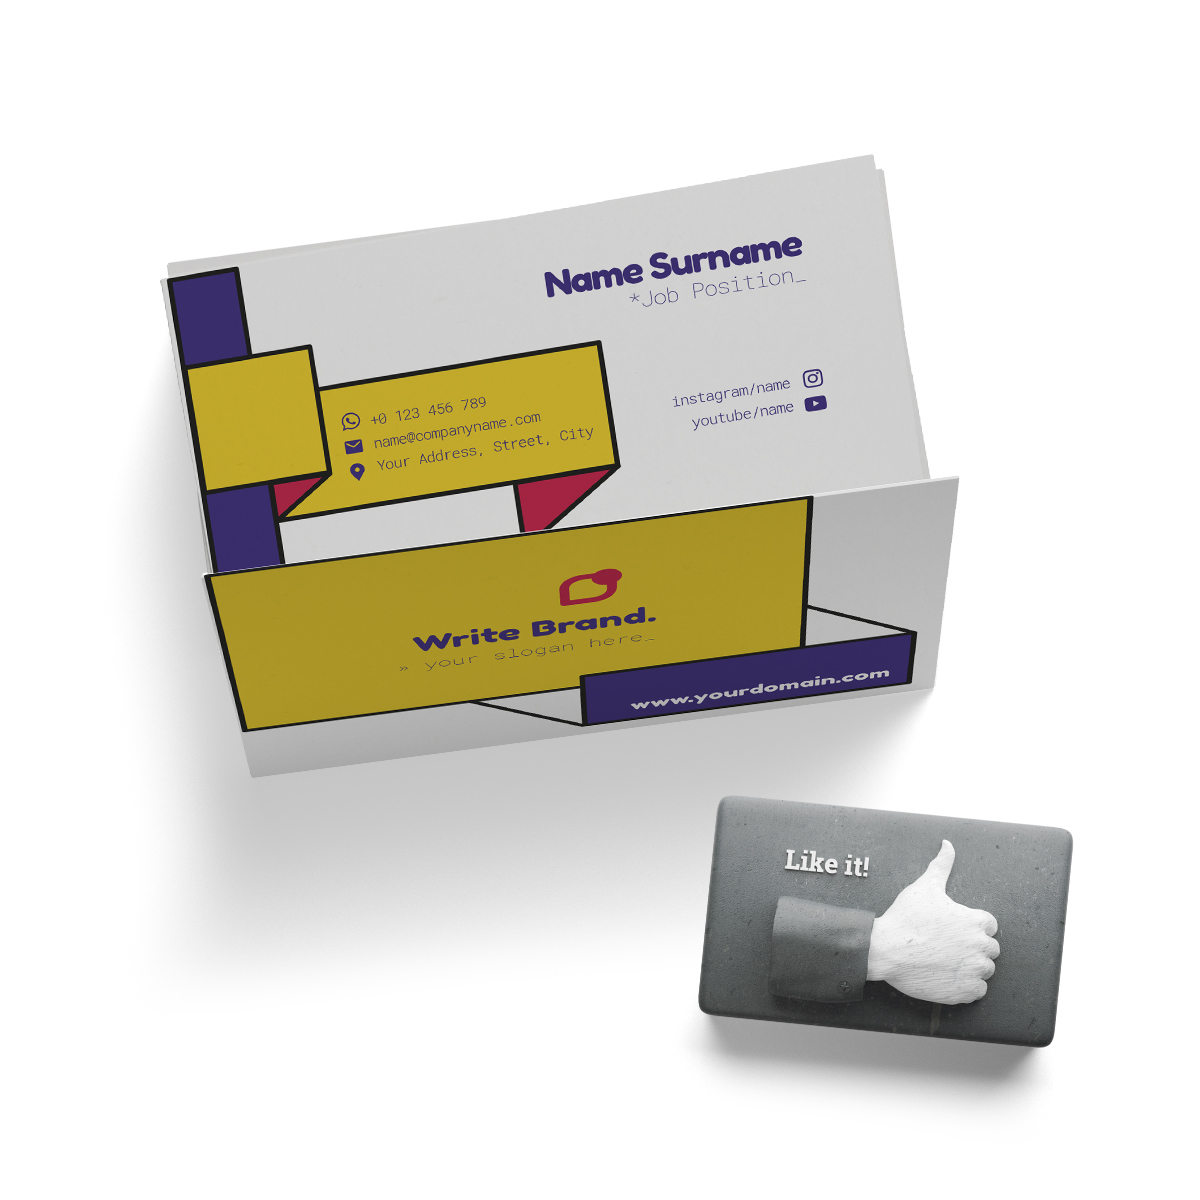 pop_business_card_02